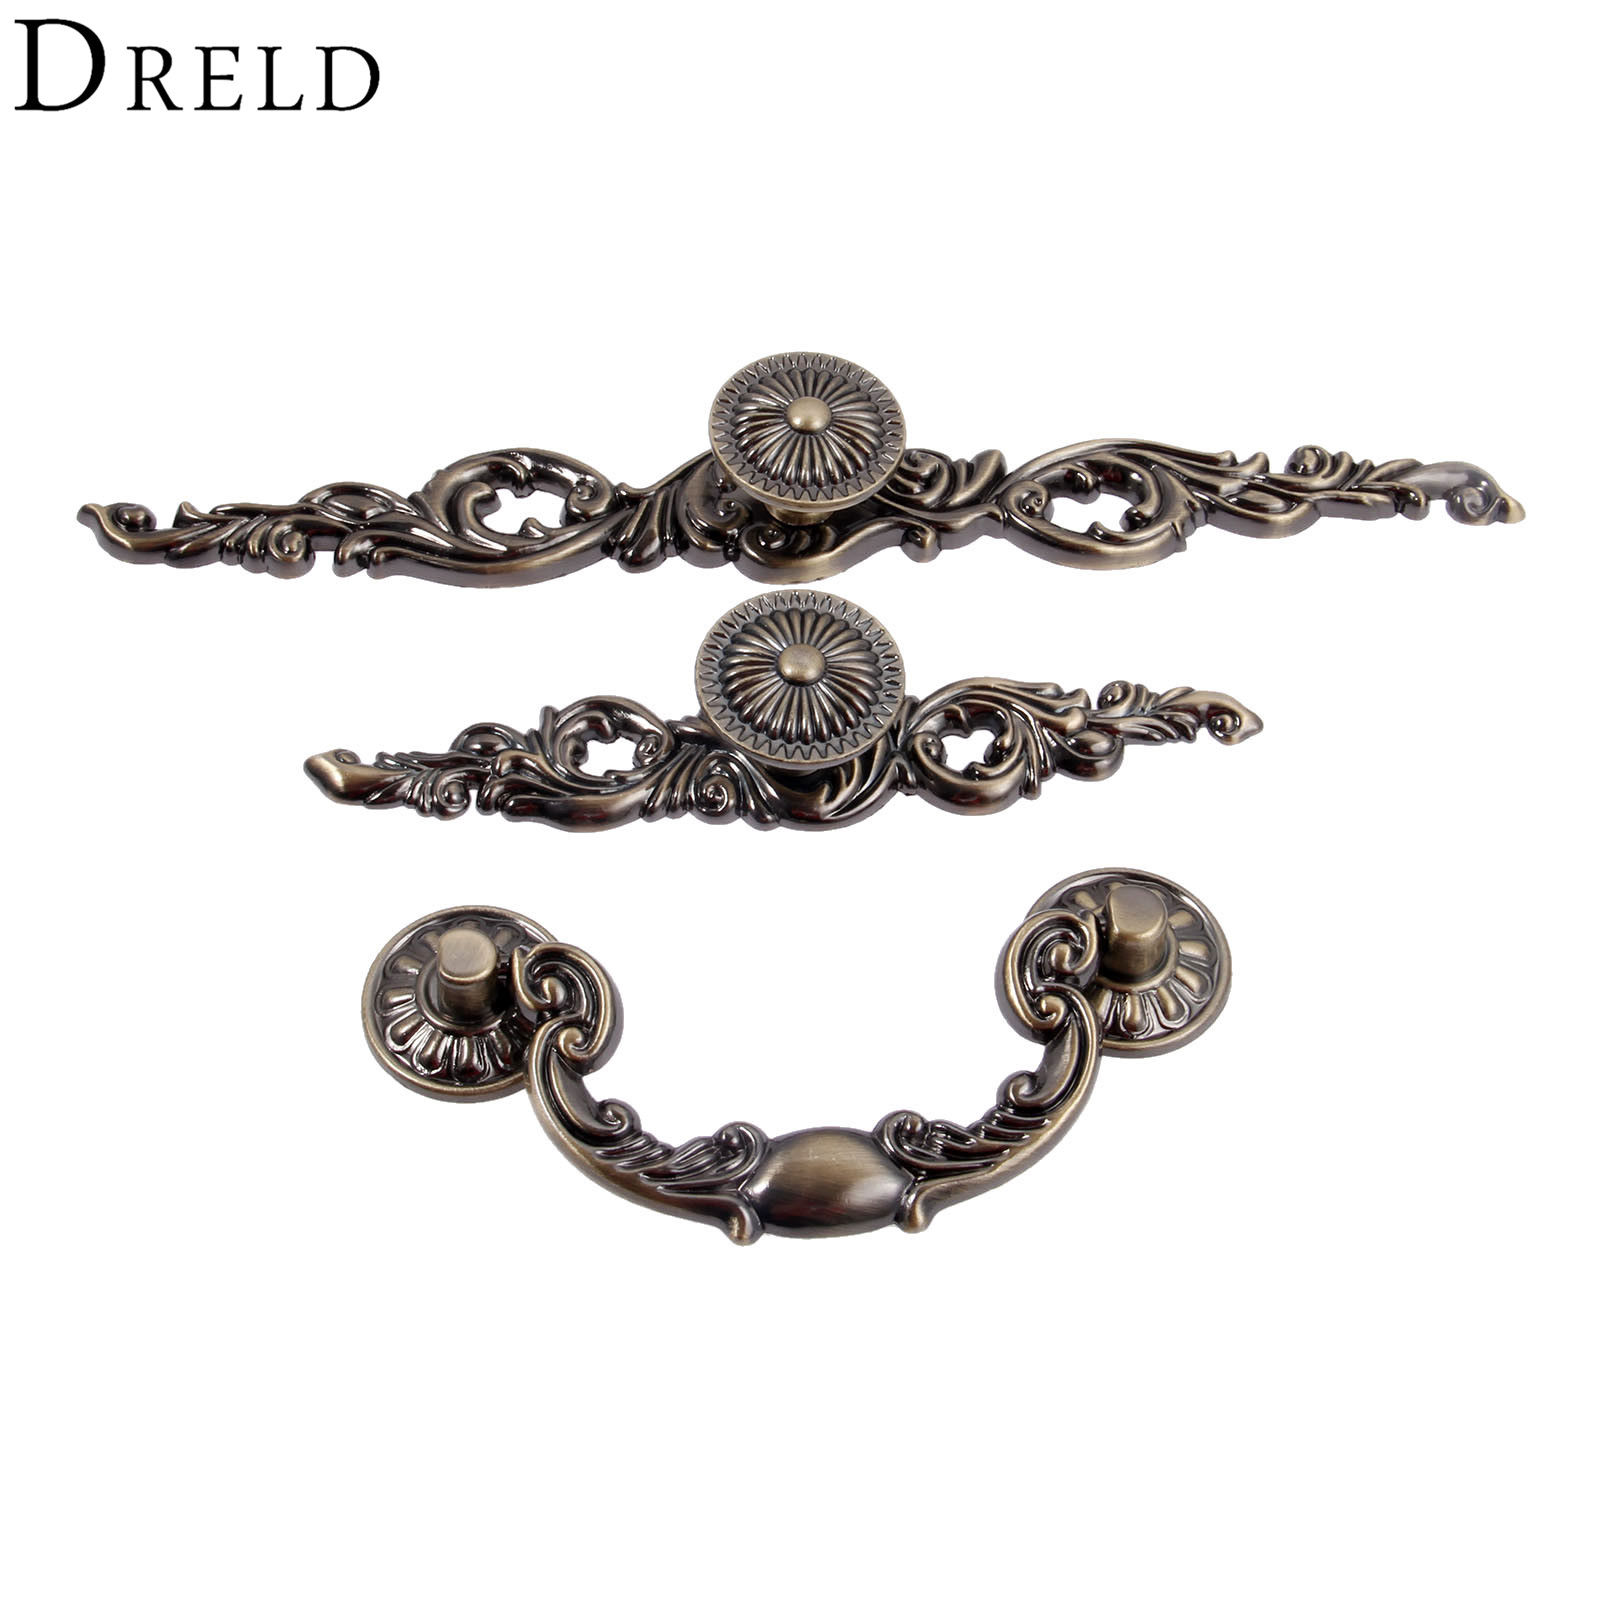 DRELD Vintage Dresser Drawer Cabinet Knobs and Handles Antique Bronze Kitchen Door Knob Cupboard Pull Handles Furniture Hardware